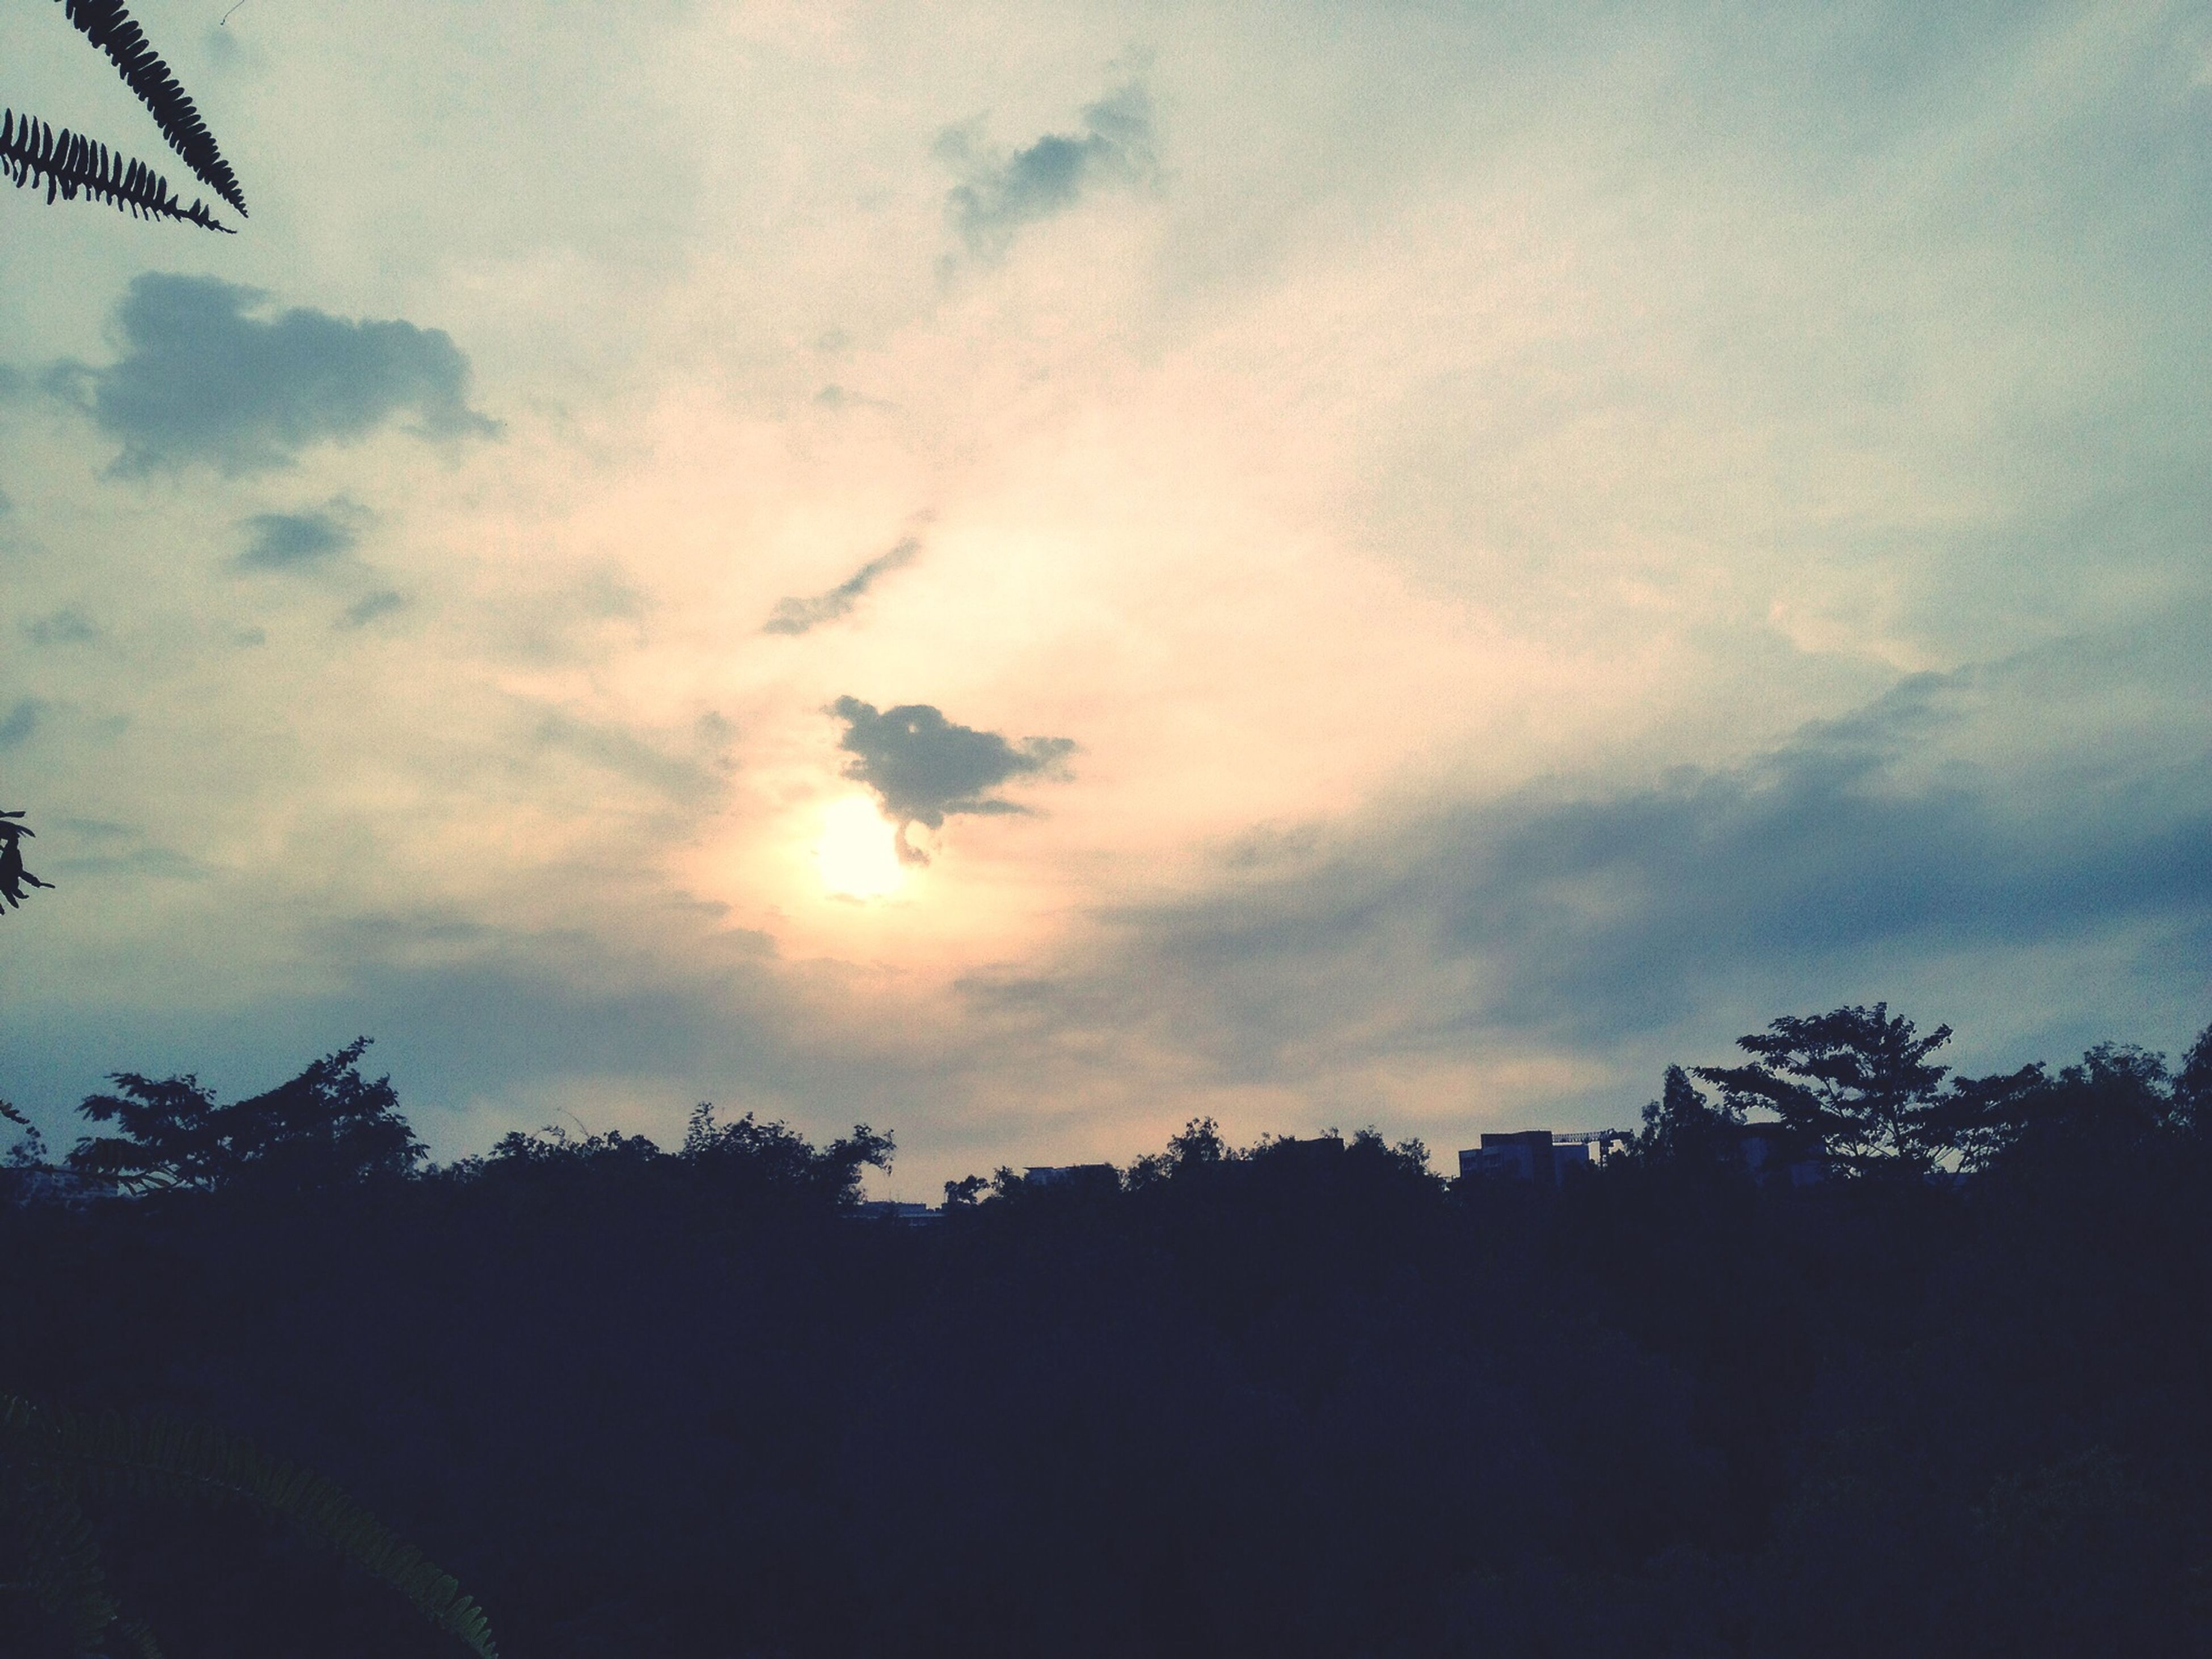 flying, sky, tree, silhouette, bird, cloud - sky, low angle view, mid-air, nature, animal themes, beauty in nature, cloudy, scenics, tranquility, sunset, cloud, tranquil scene, animals in the wild, wildlife, outdoors